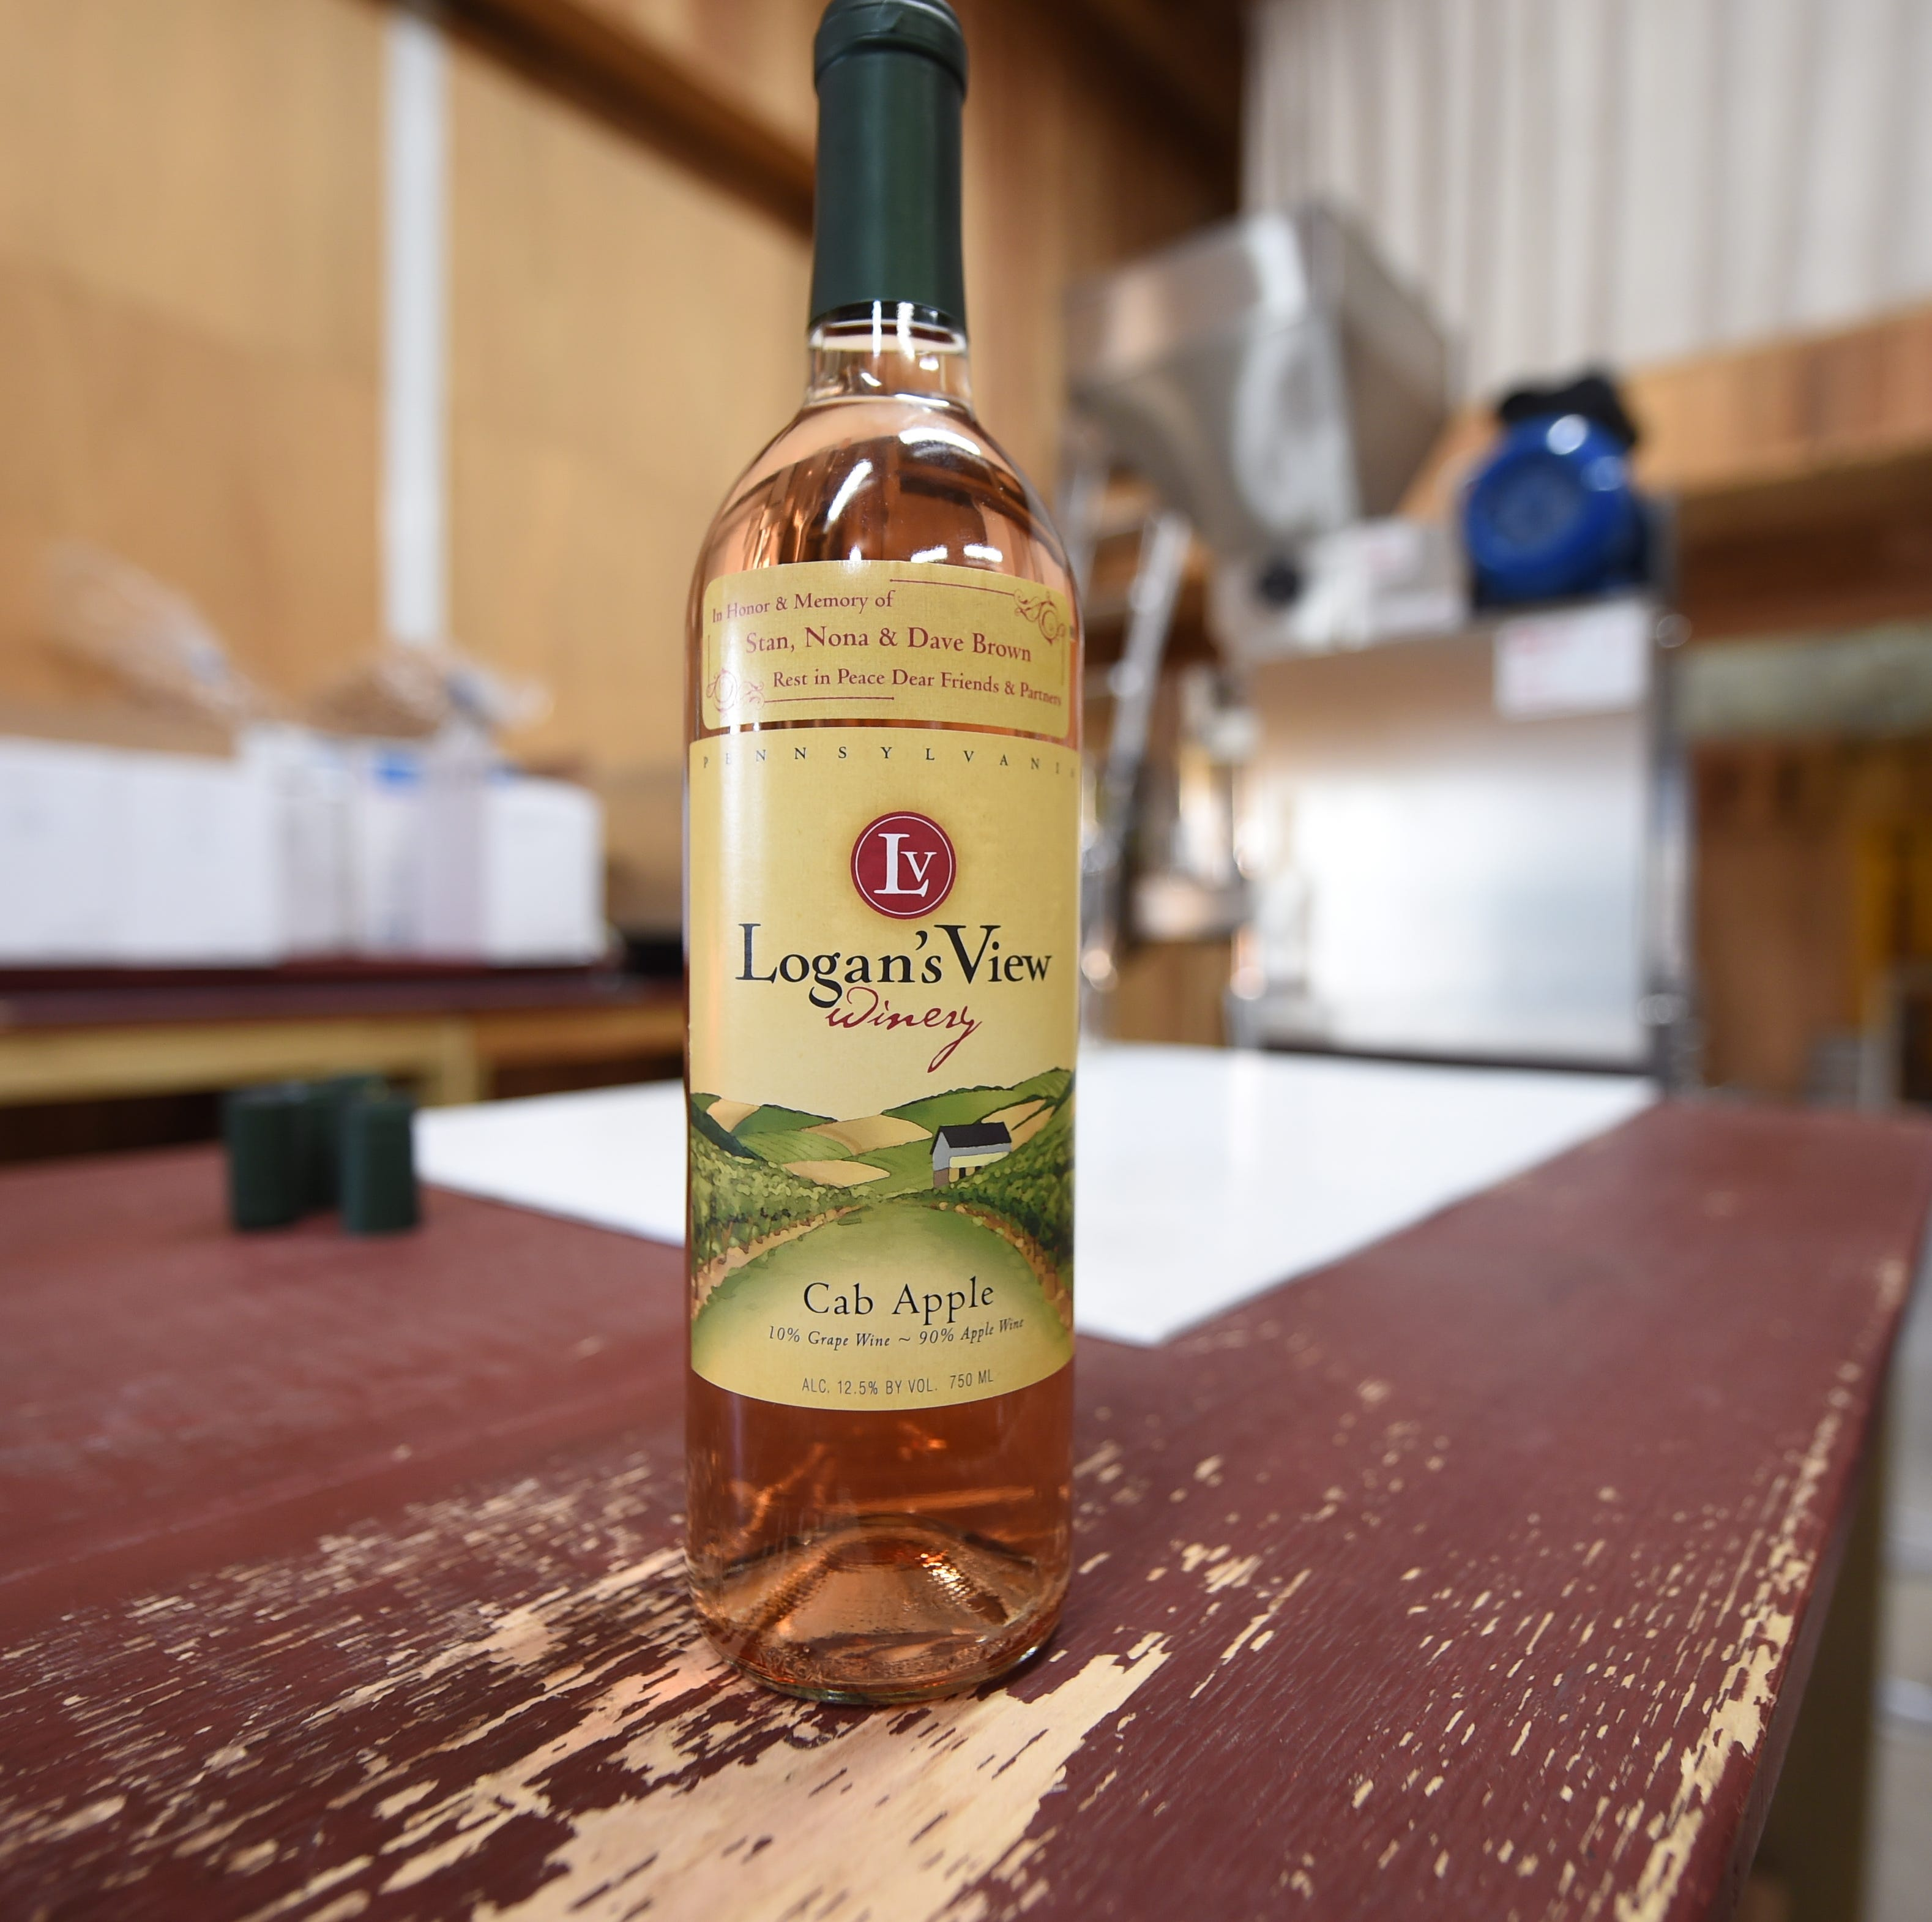 A bottle of Cab Apple from Logan's View Winery. The winery has produced a thousand bottles of the commemorative wine, a dollar of each bottle sold will be donated to the Dave Brown Music Scholarship in honor of the Brown family.